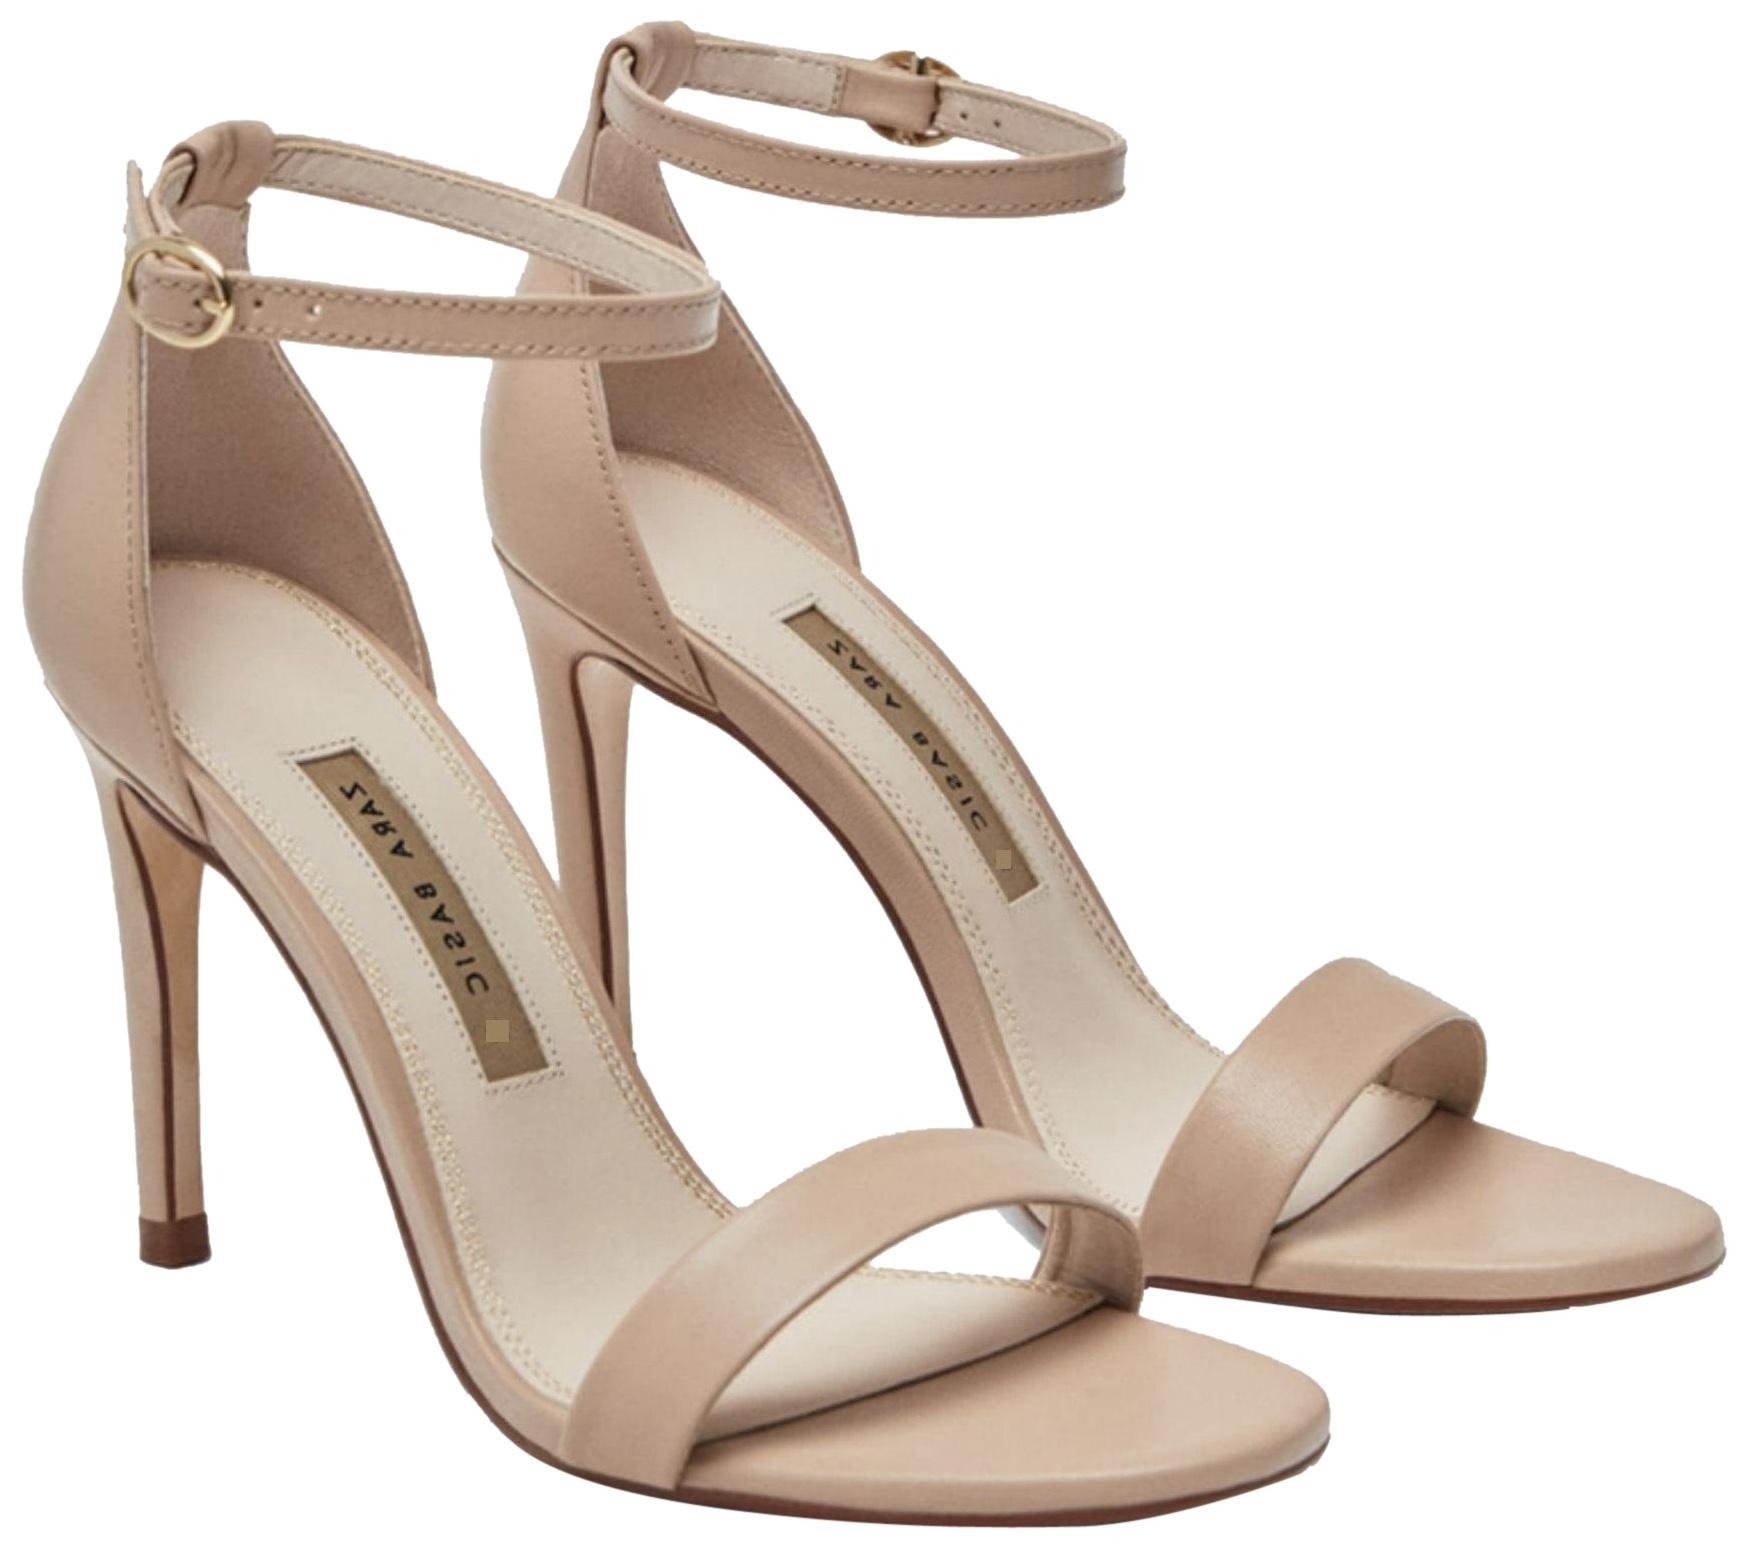 Zara Beige Leather High Sandals Size US 10 Regular (M, B)